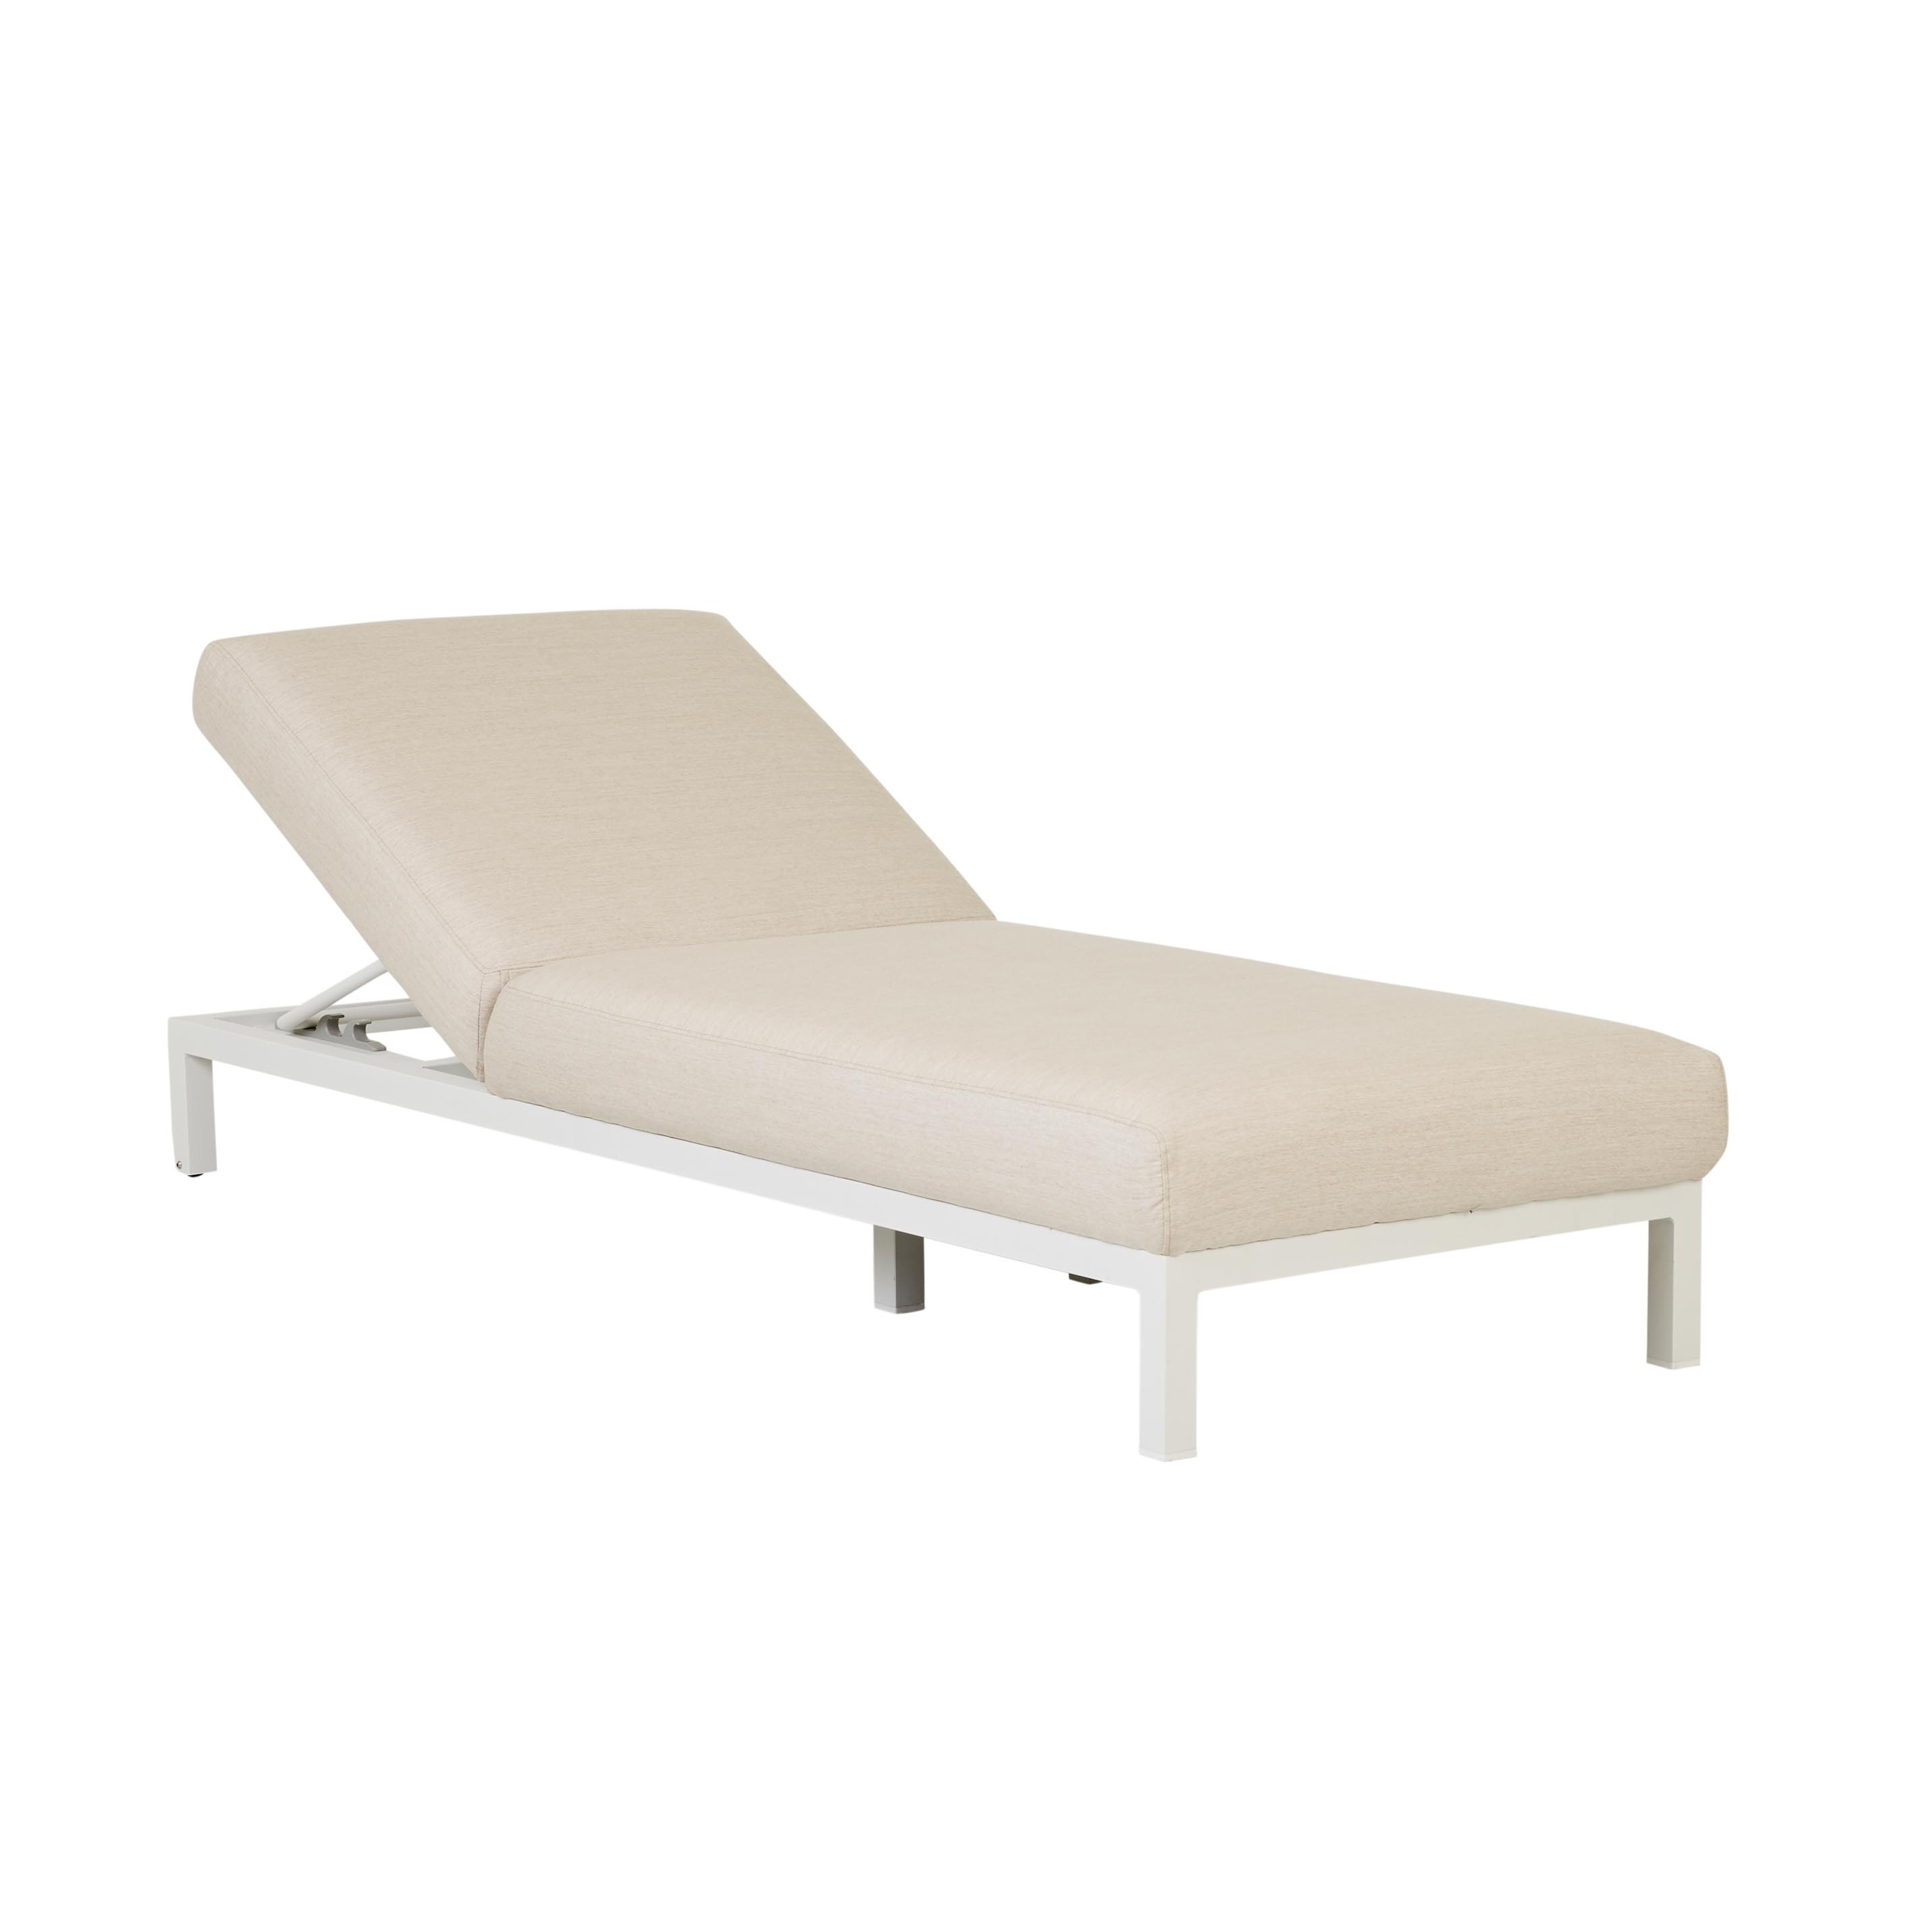 Furniture Hero-Images Sunbeds-and-Daybeds aruba-rounded-sunbed-03